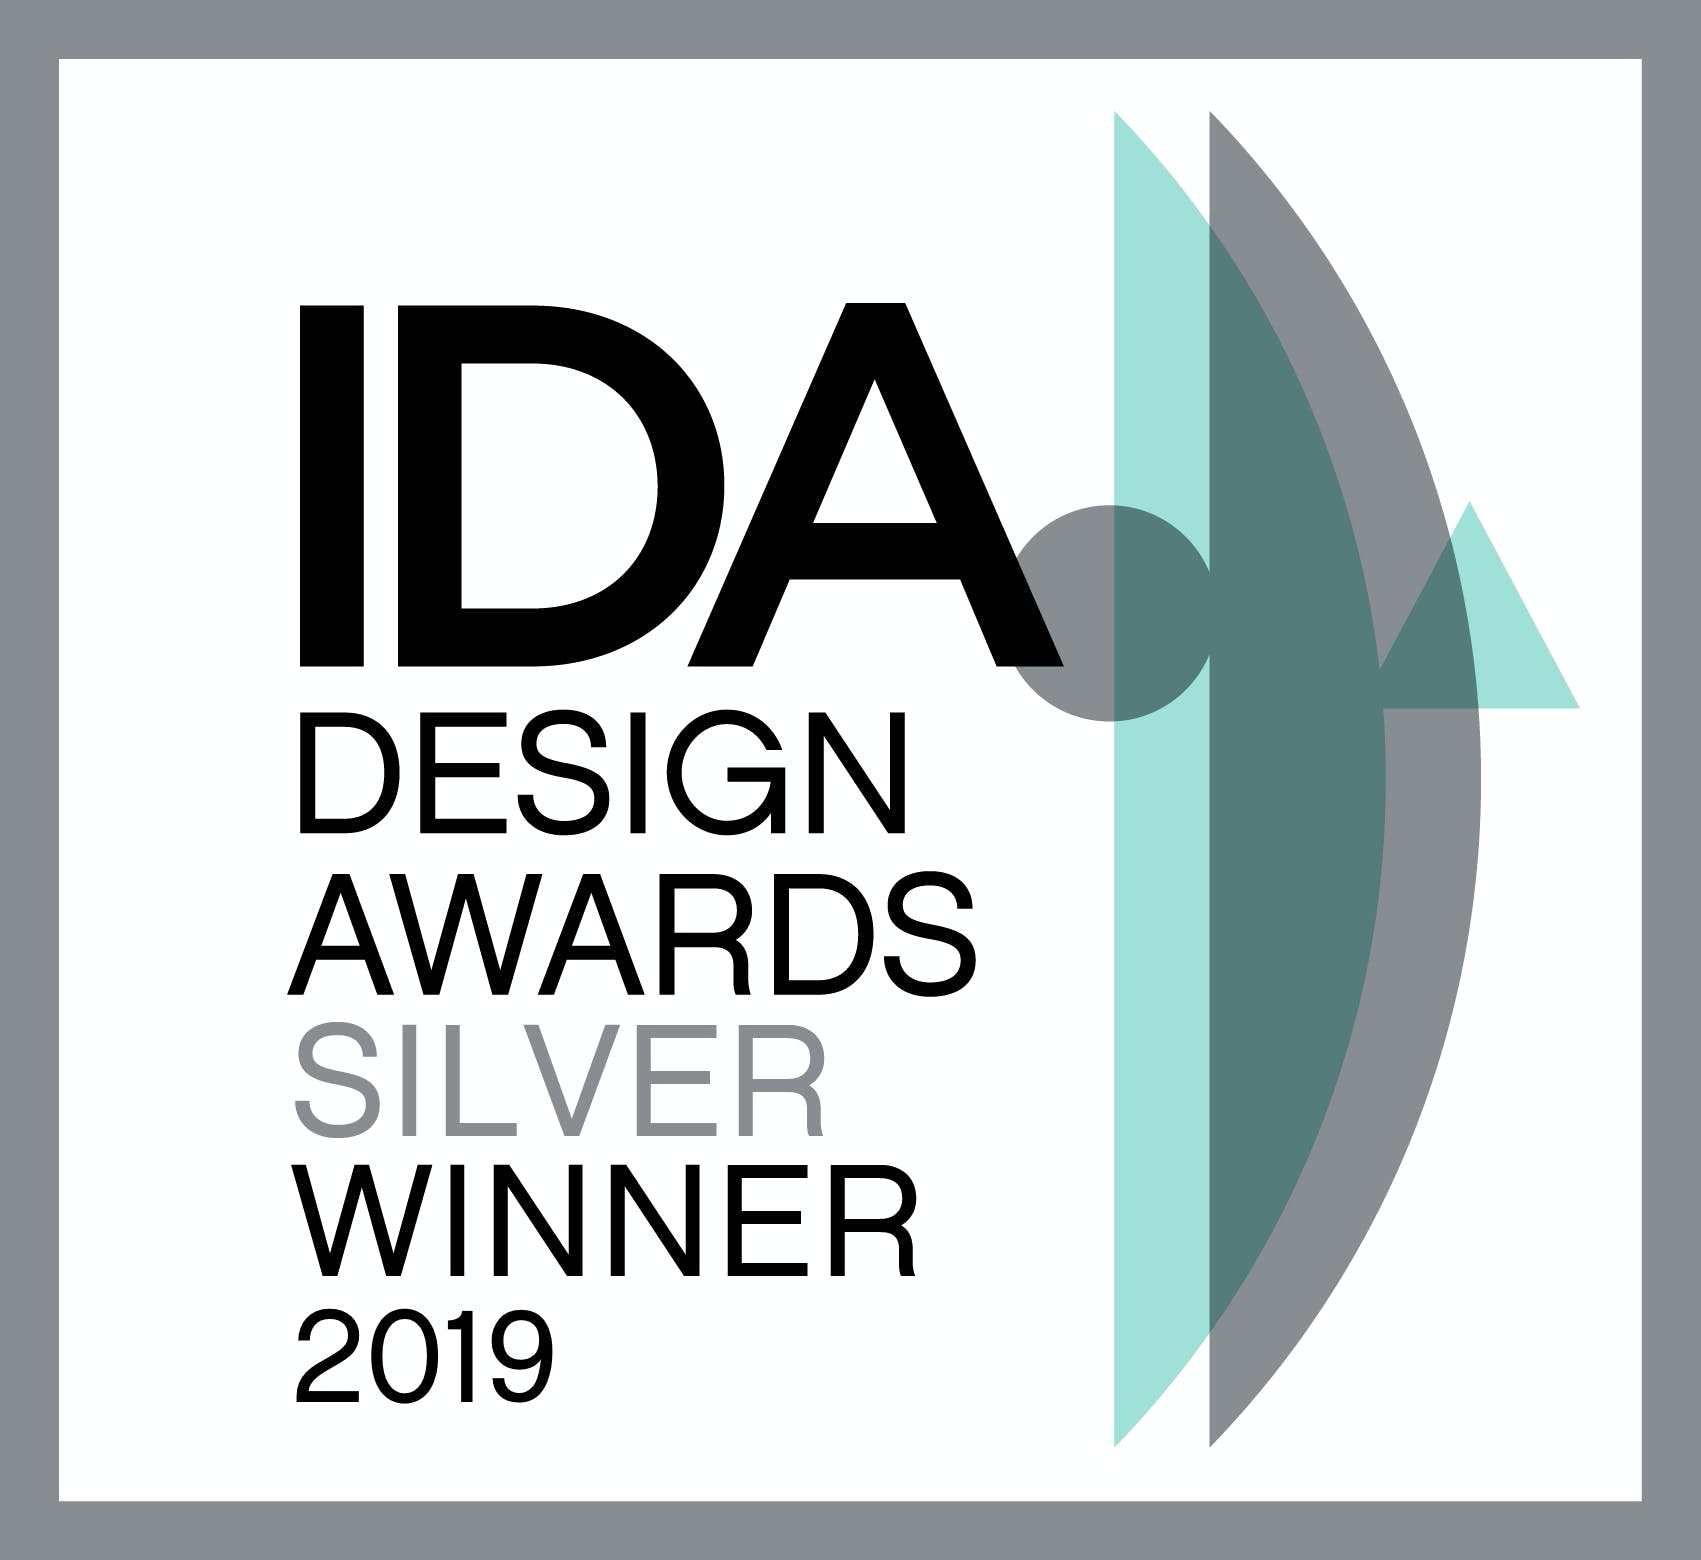 Image of International Design Awards 2019 Silver 1 3 in Dekton Trilium Wins Silver in 2019 International Design Awards for Eco-Sustainable Design - Cosentino